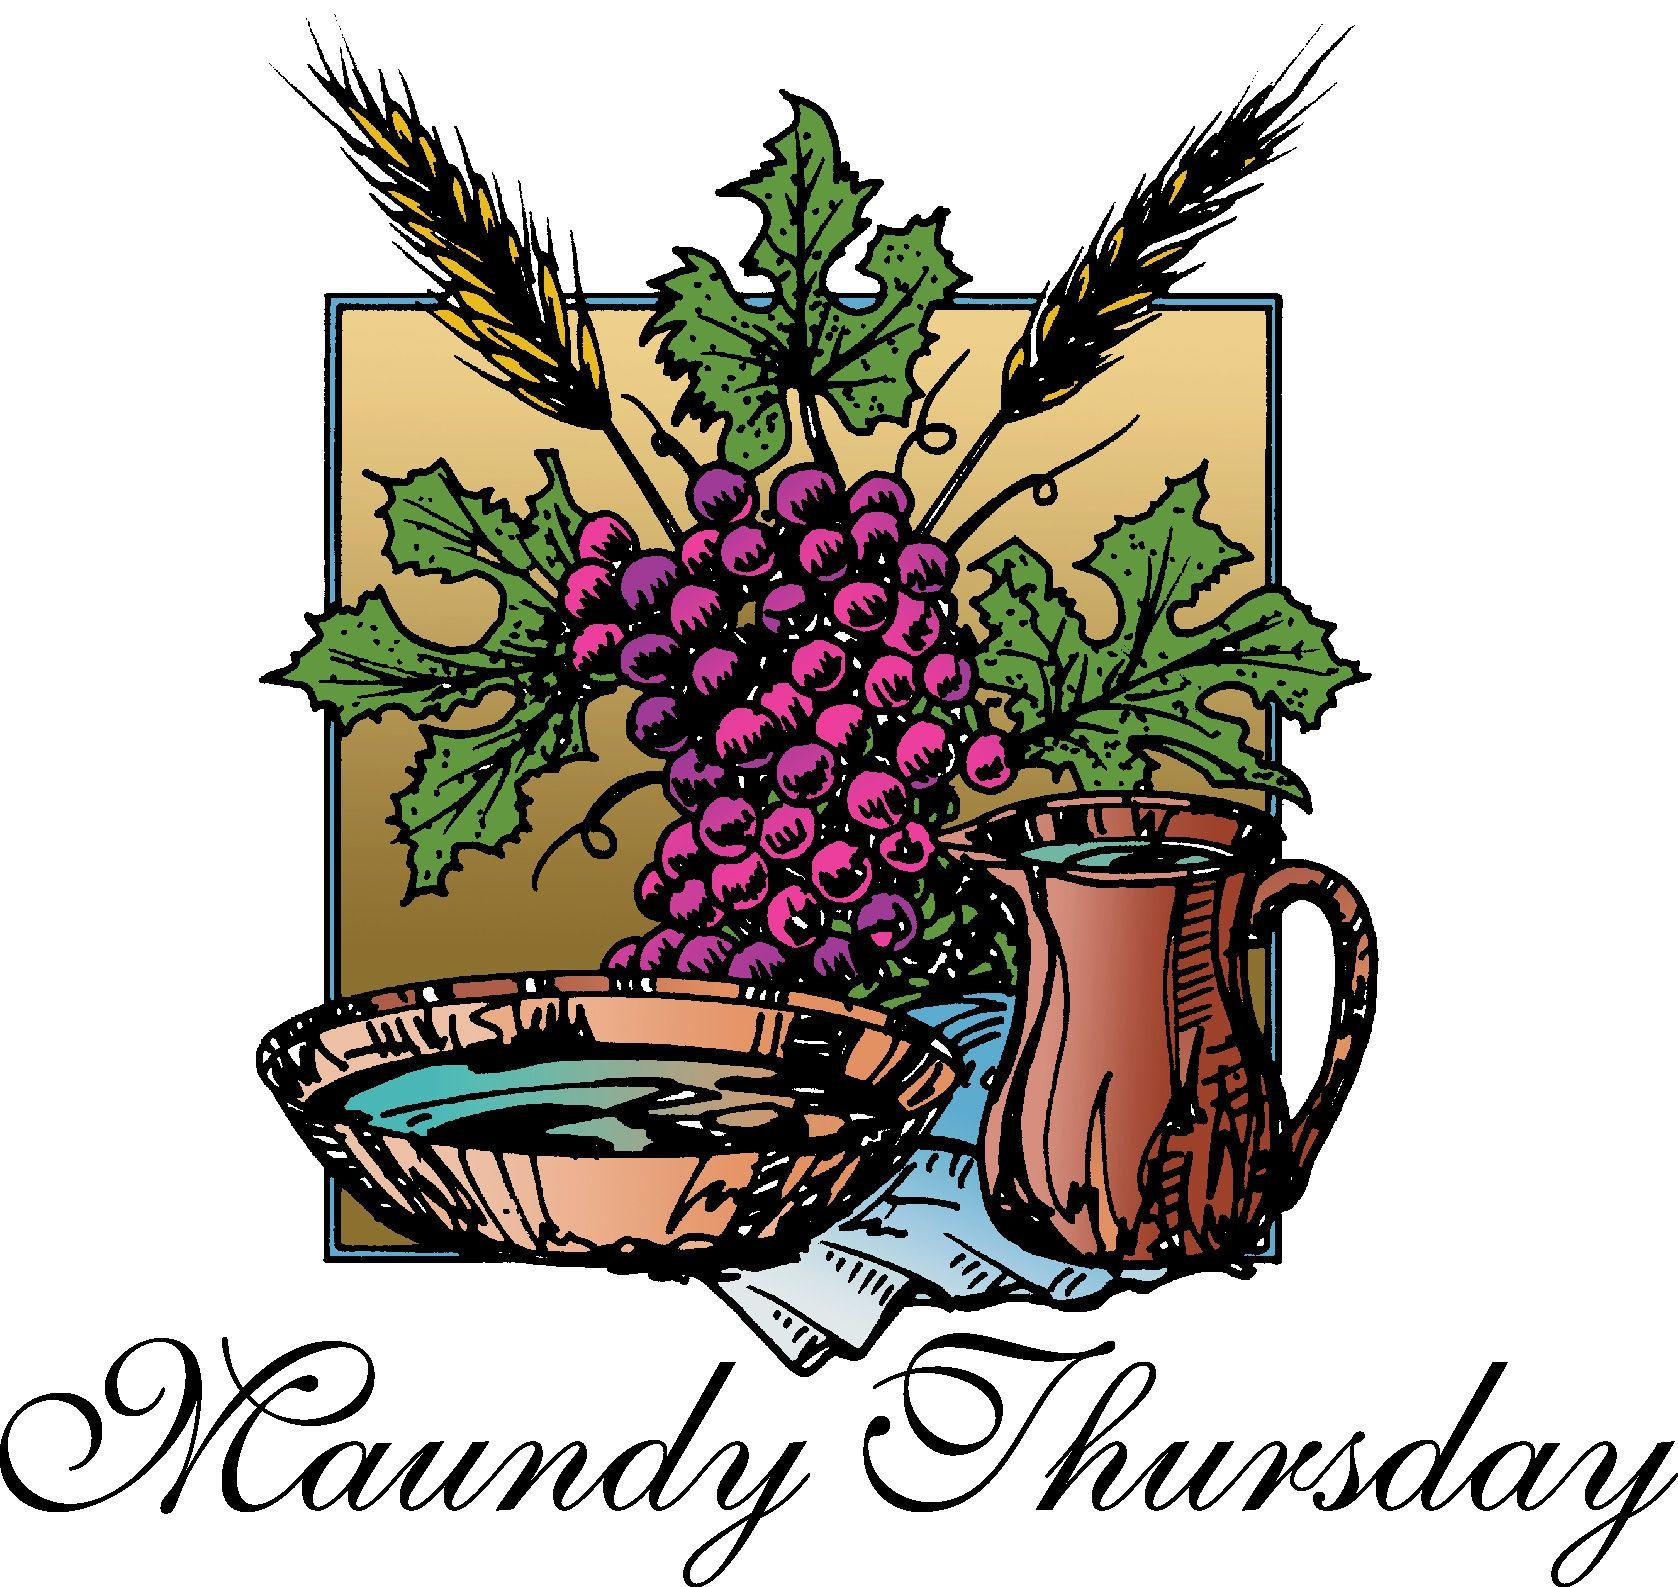 Images For > Maundy Thursday Images | The Church Calendar Year ...